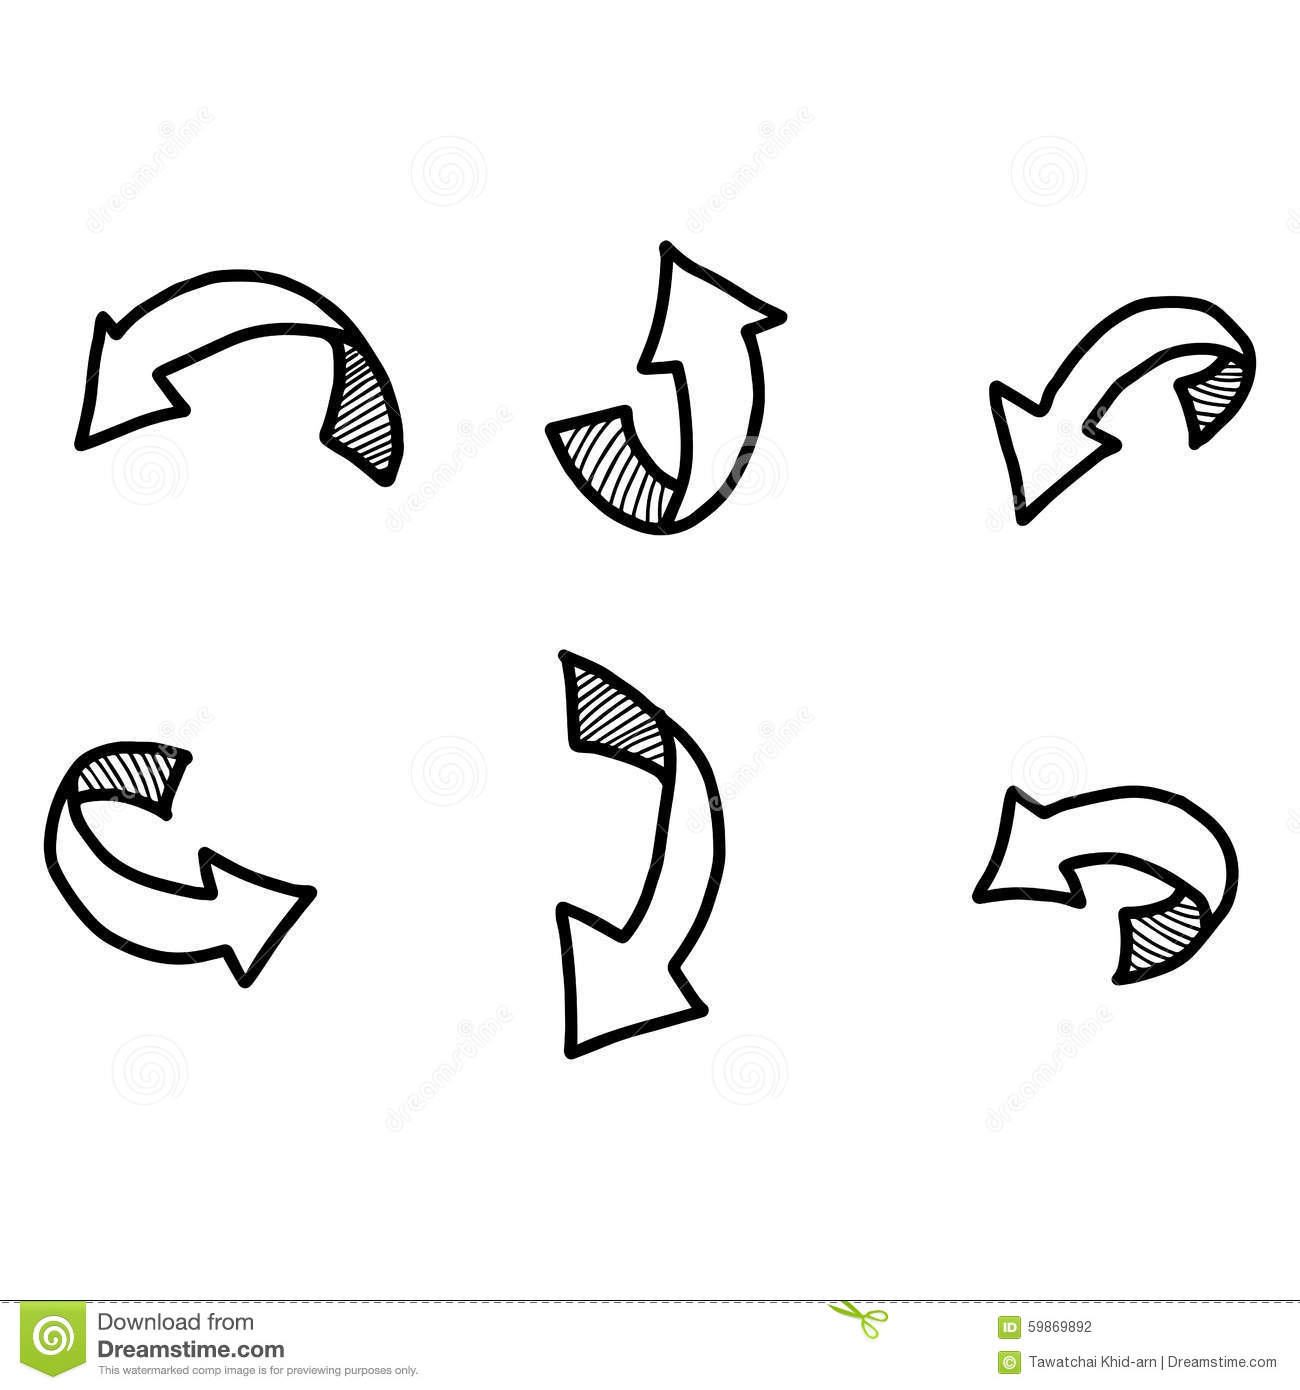 Illustration Vector Doodles Hand Drawn Curved Arrow With Shadow